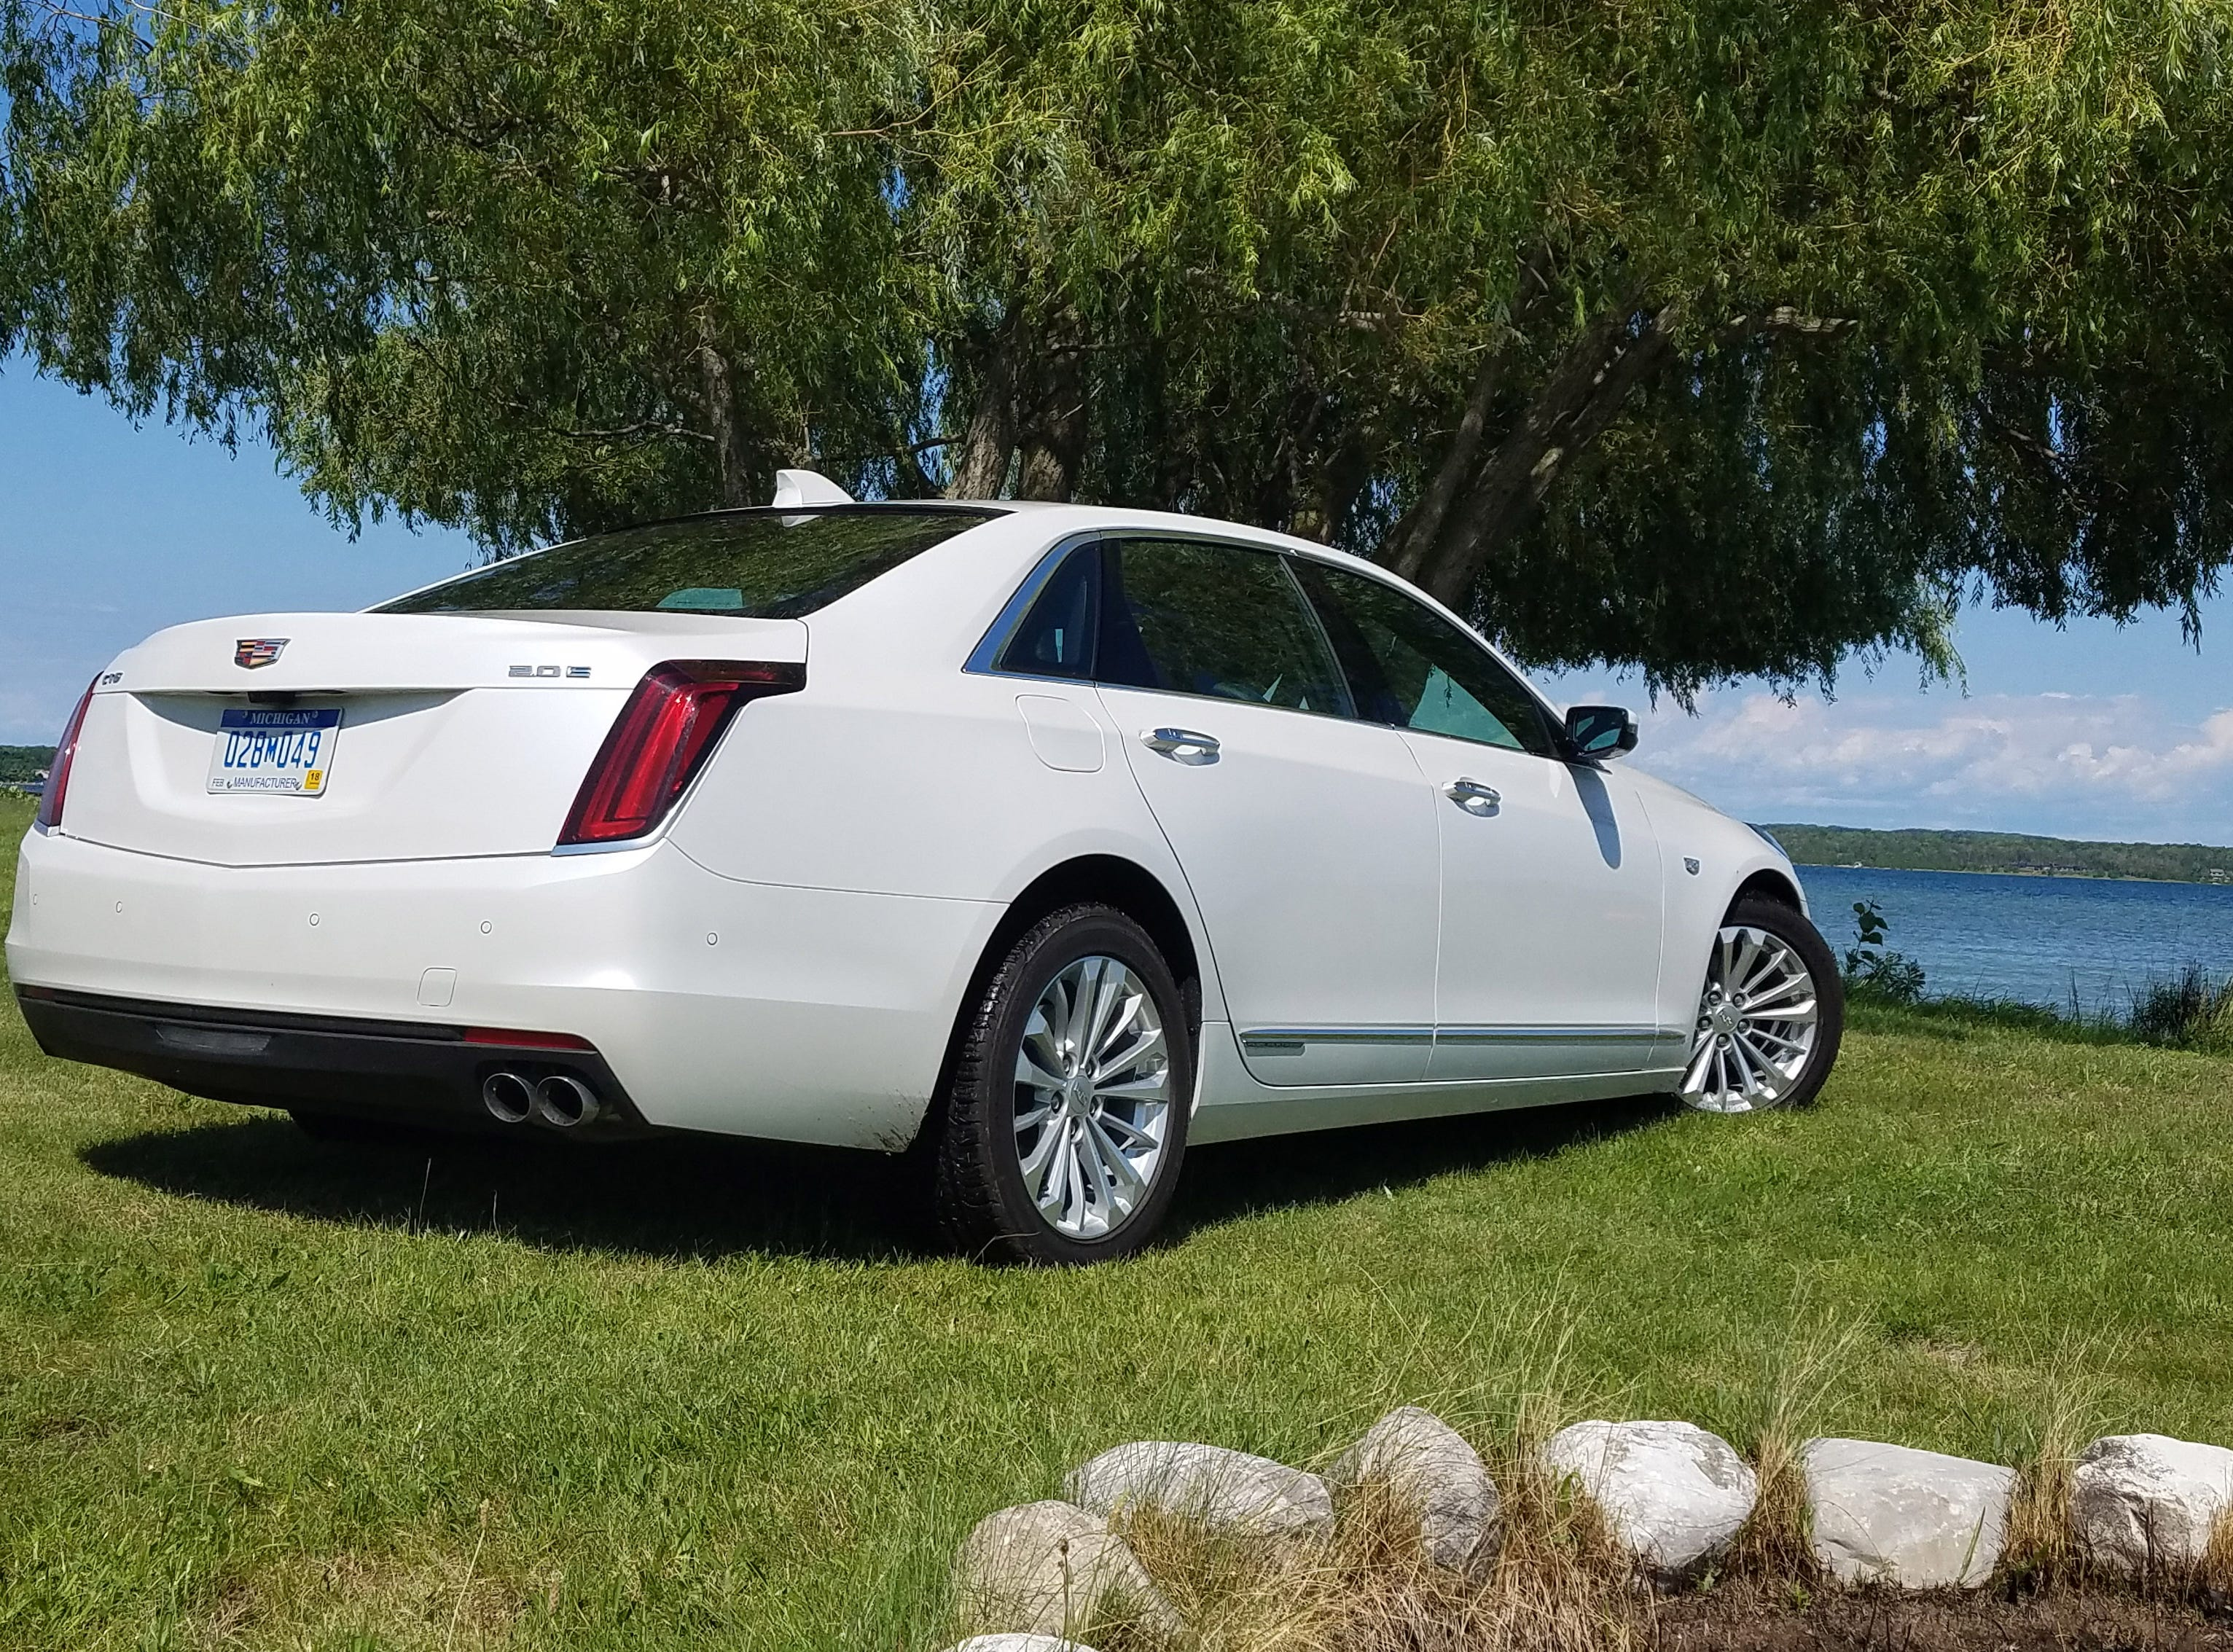 The 2017 Cadillac CT6 Plug-in's rear quarters are less distinctive than the Pentagon-grille front end. With the battery stored in the trunk, the rear seats are fixed in place and cannot be flattened for pass-through cargo storage.